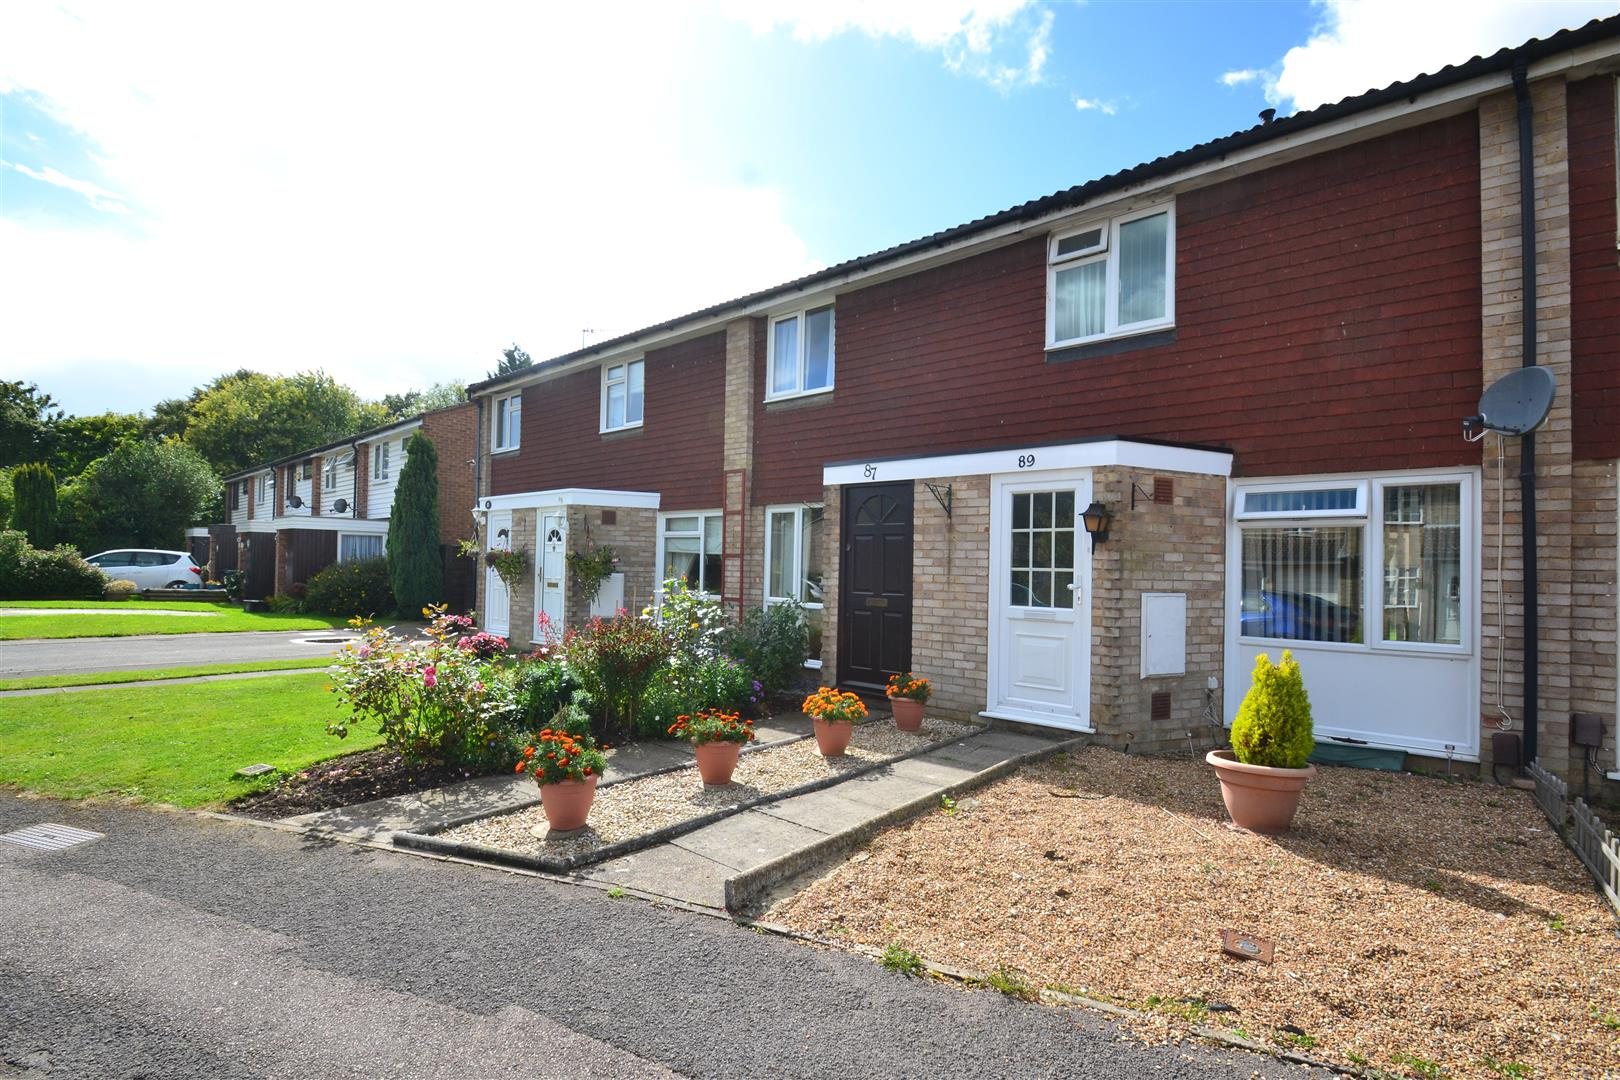 2 Bedrooms Terraced House for sale in Tanyard Way, Horley